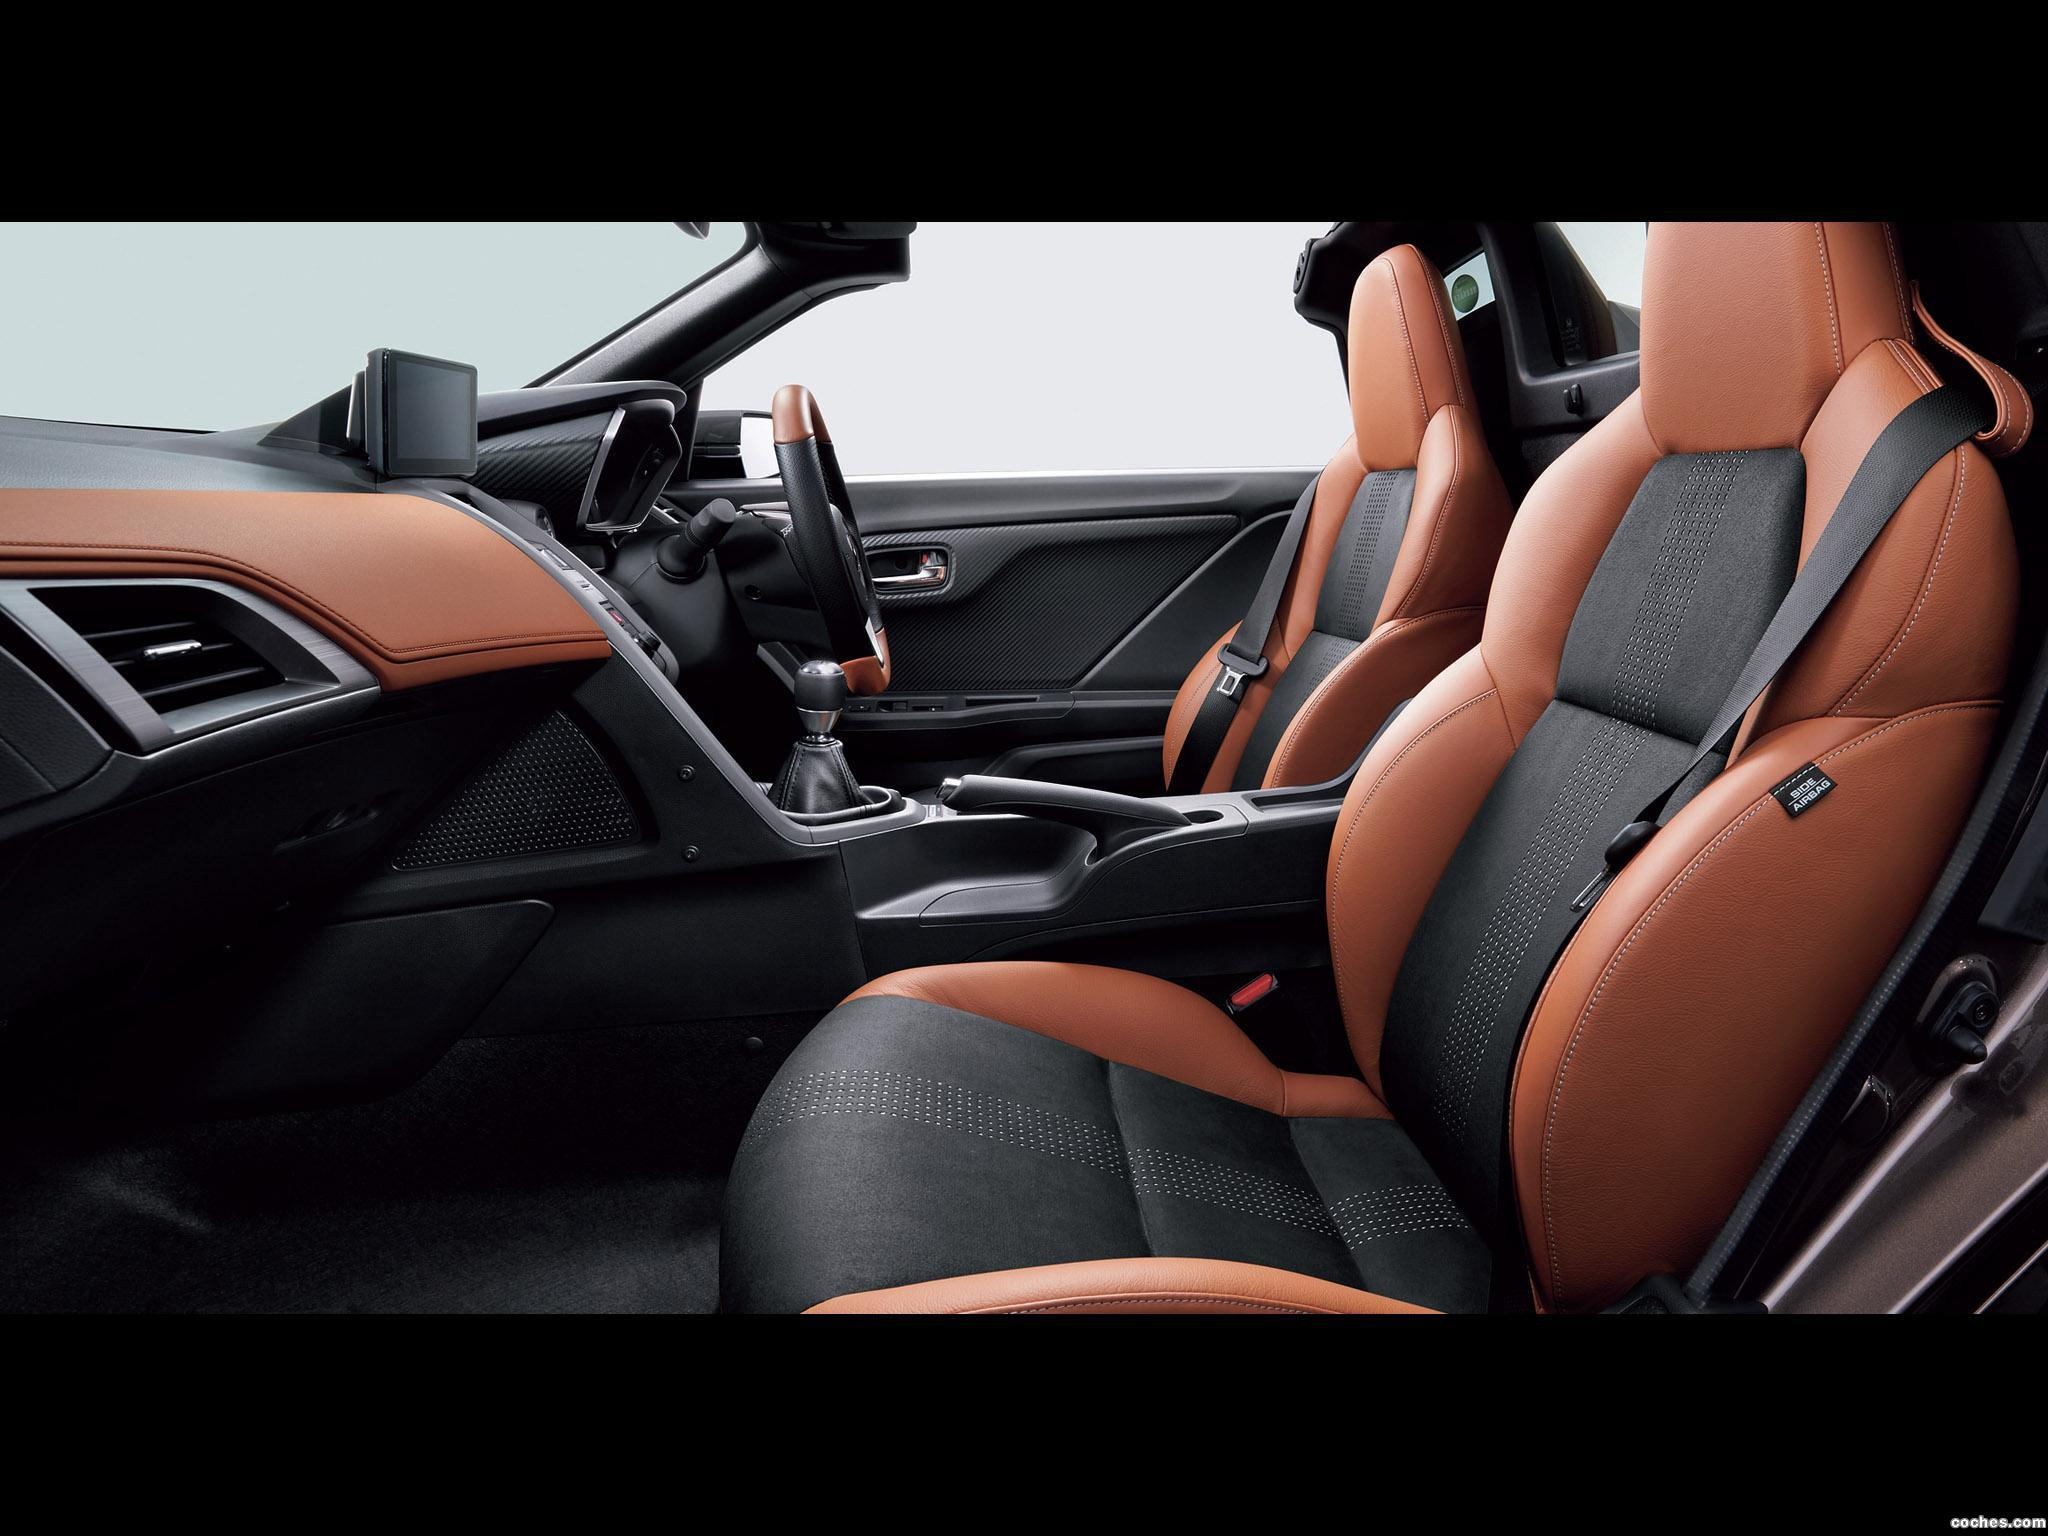 Foto 4 de Honda S660 Bruno Leather Edition 2017